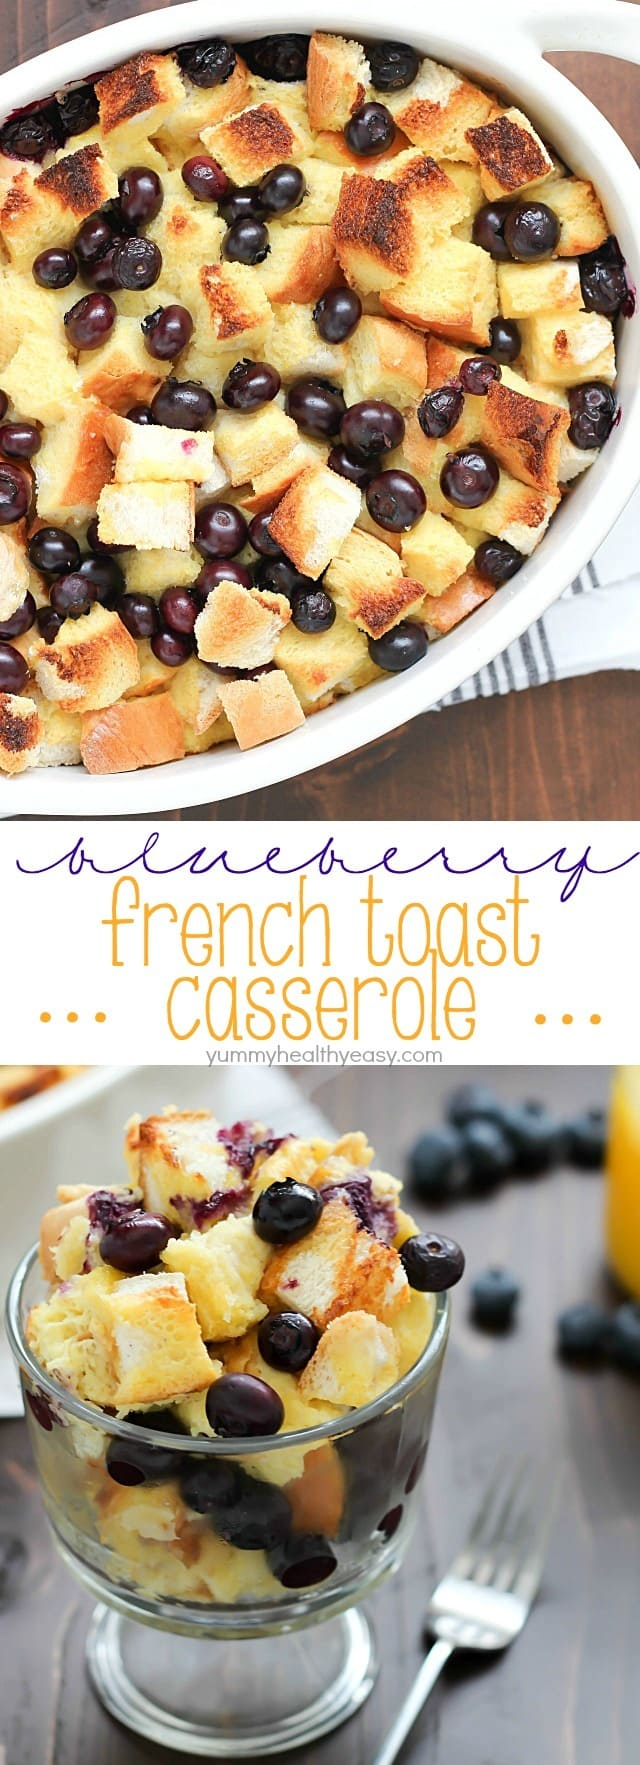 What's better than french toast? Blueberry French Toast Casserole! Delicious casserole with cubes of bread and blueberries baked in an egg and orange juice mixture. Perfect for Easter breakfast... or breakfast any day!